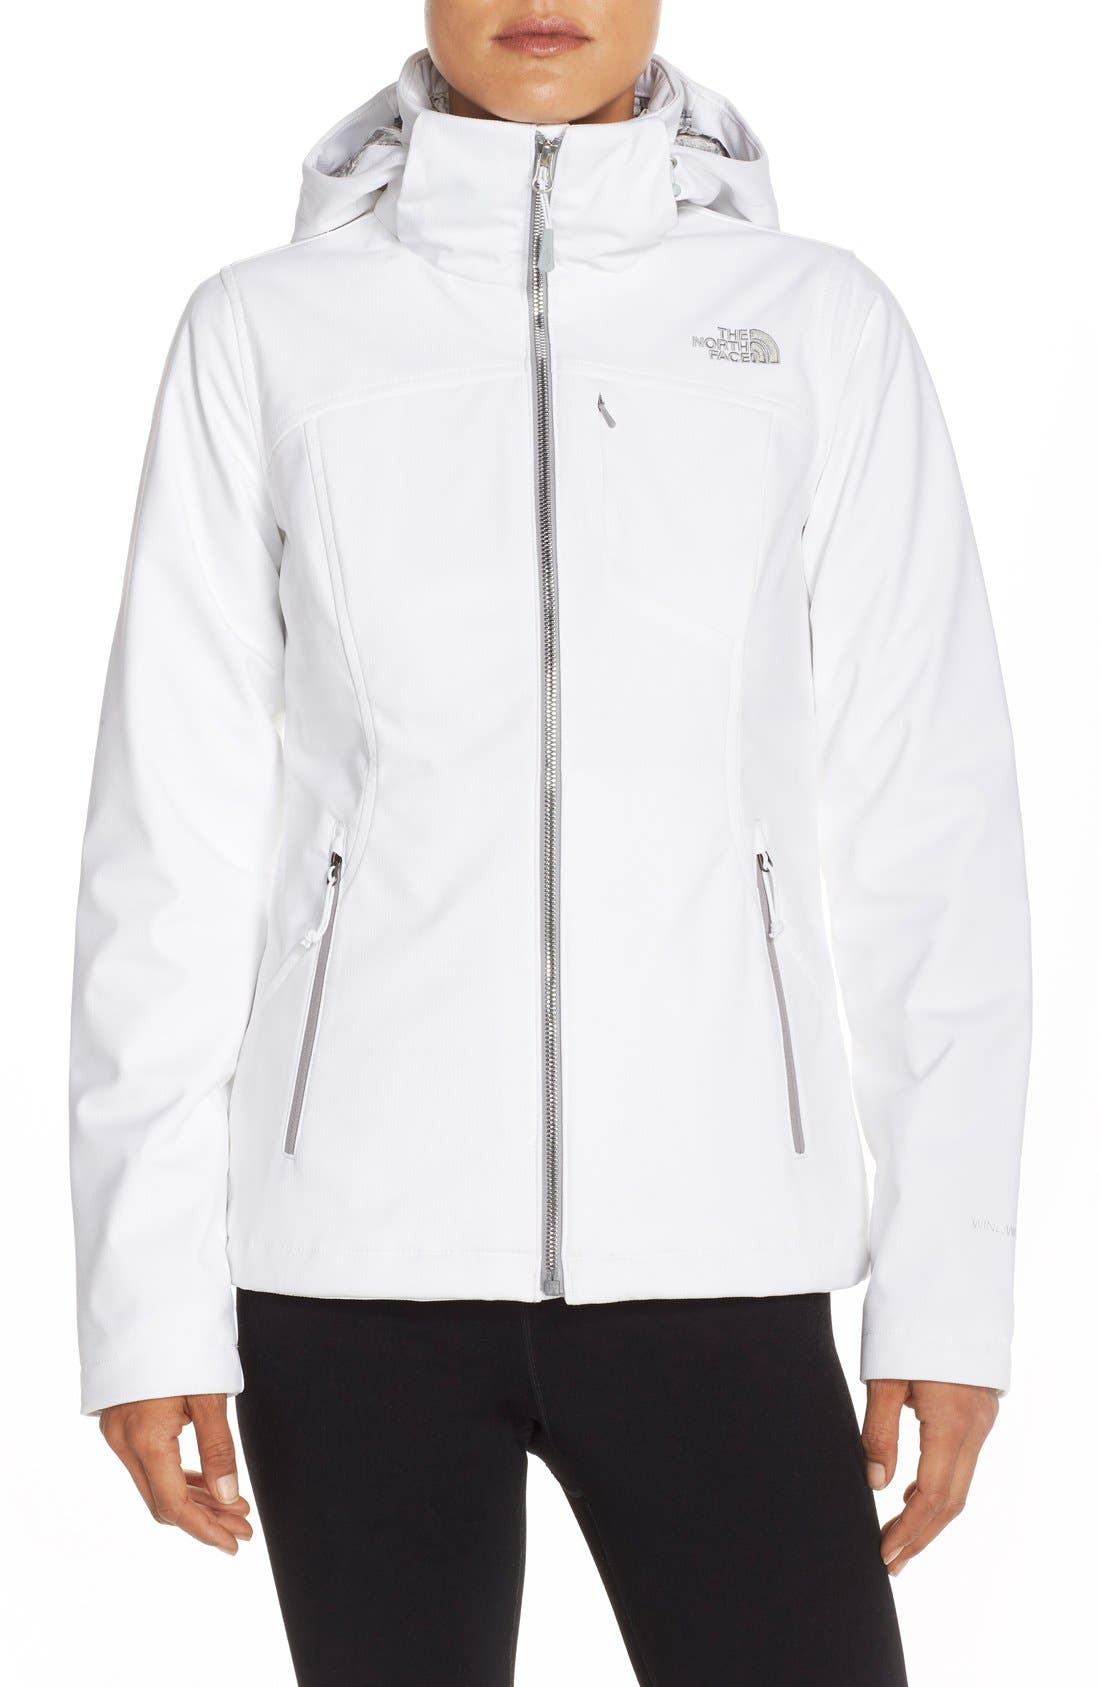 Main Image - The North Face 'Apex Elevation' Jacket